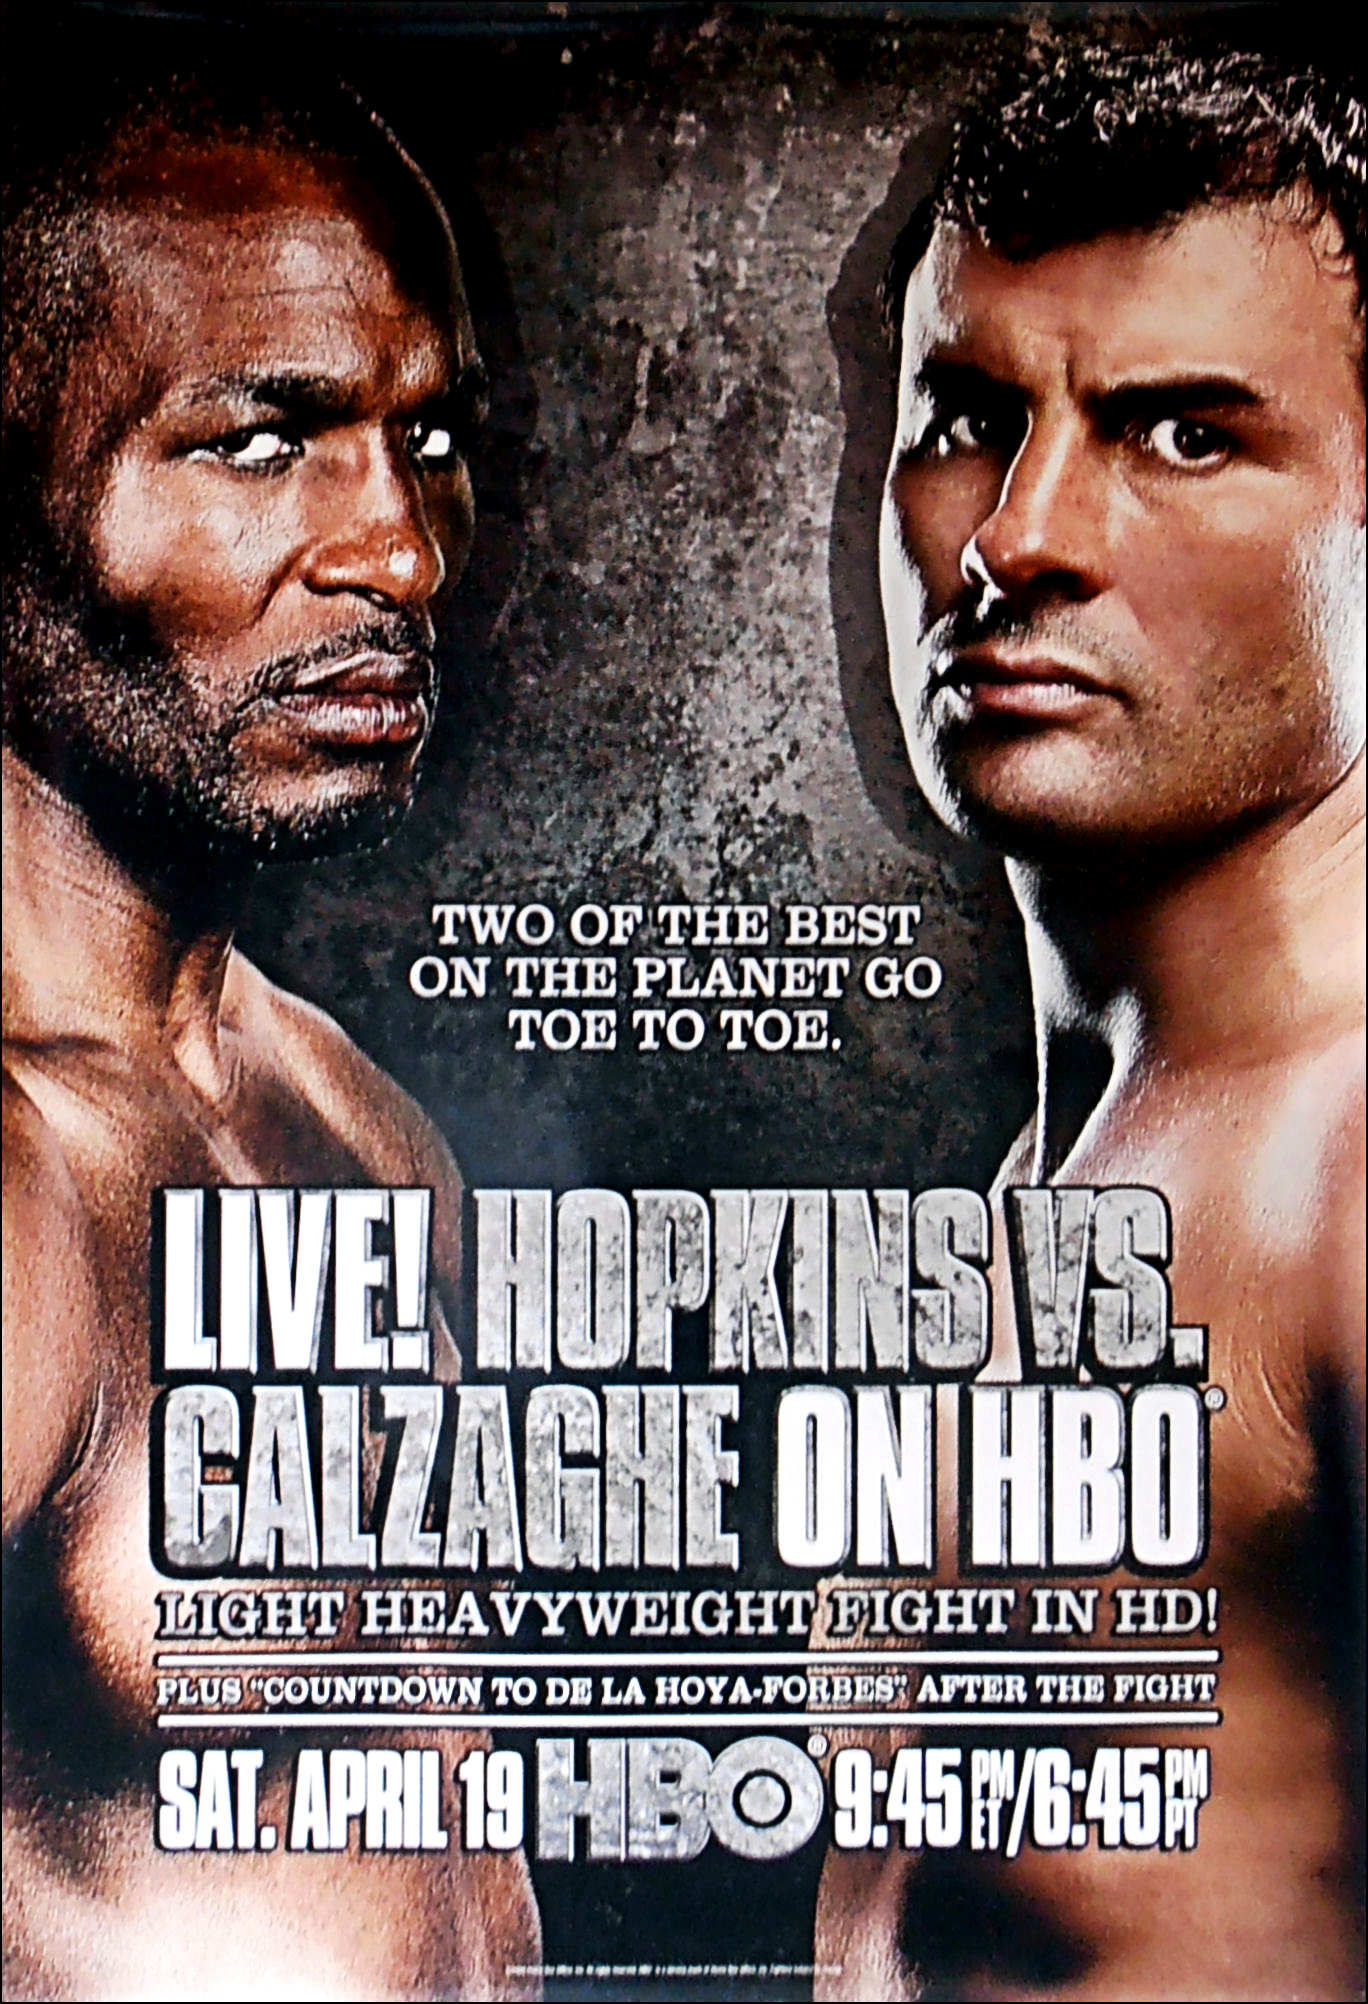 Bernard Hopkins vs. Joe Calzaghe